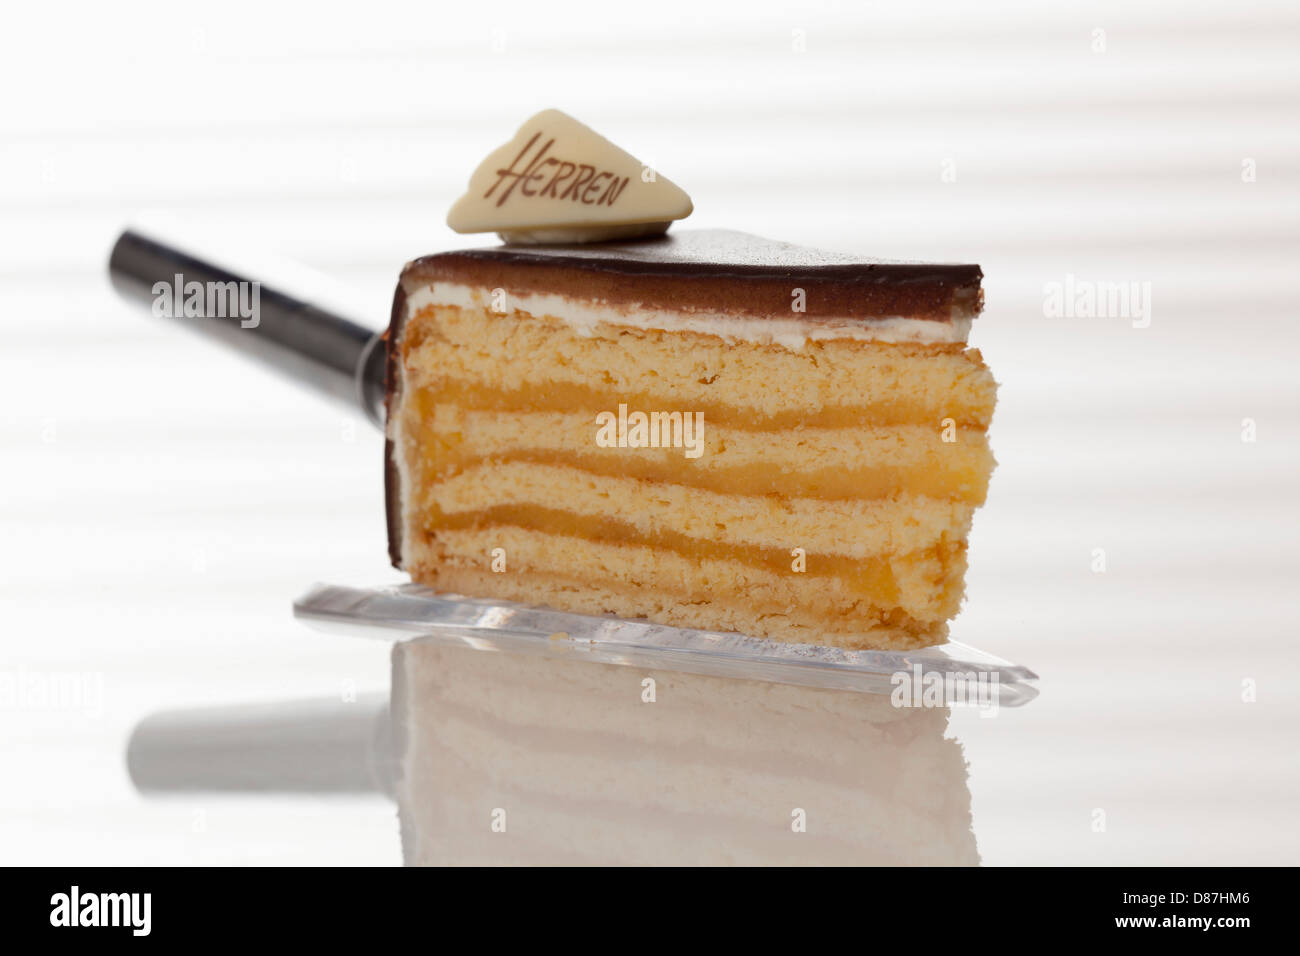 Slice of Herrentorte on cake server, close up - Stock Image